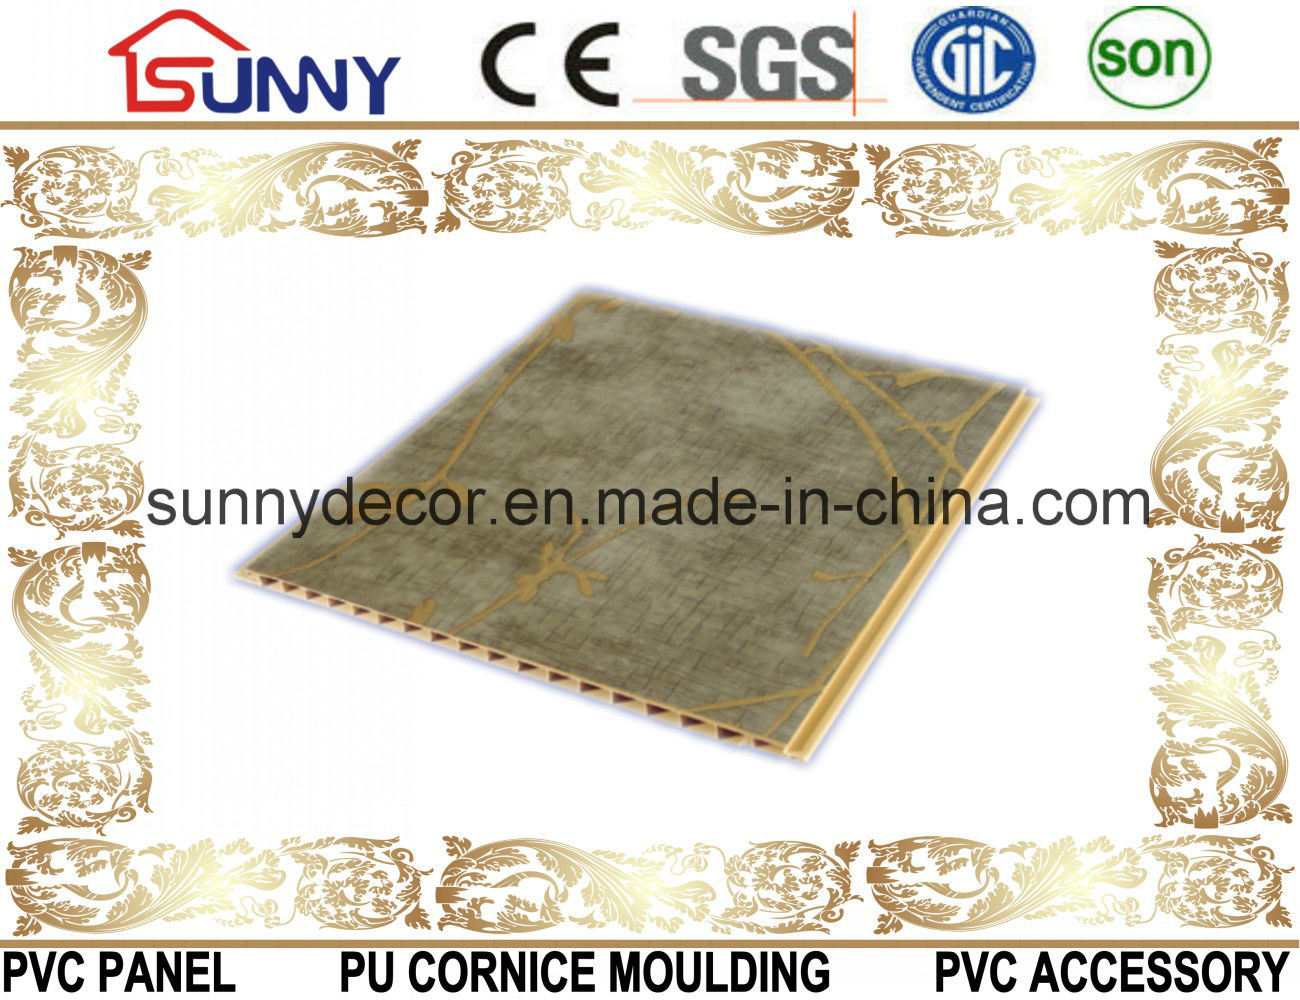 New Pattern Pvcwall-PVC Ceiling Panel Laminated PVC Panel